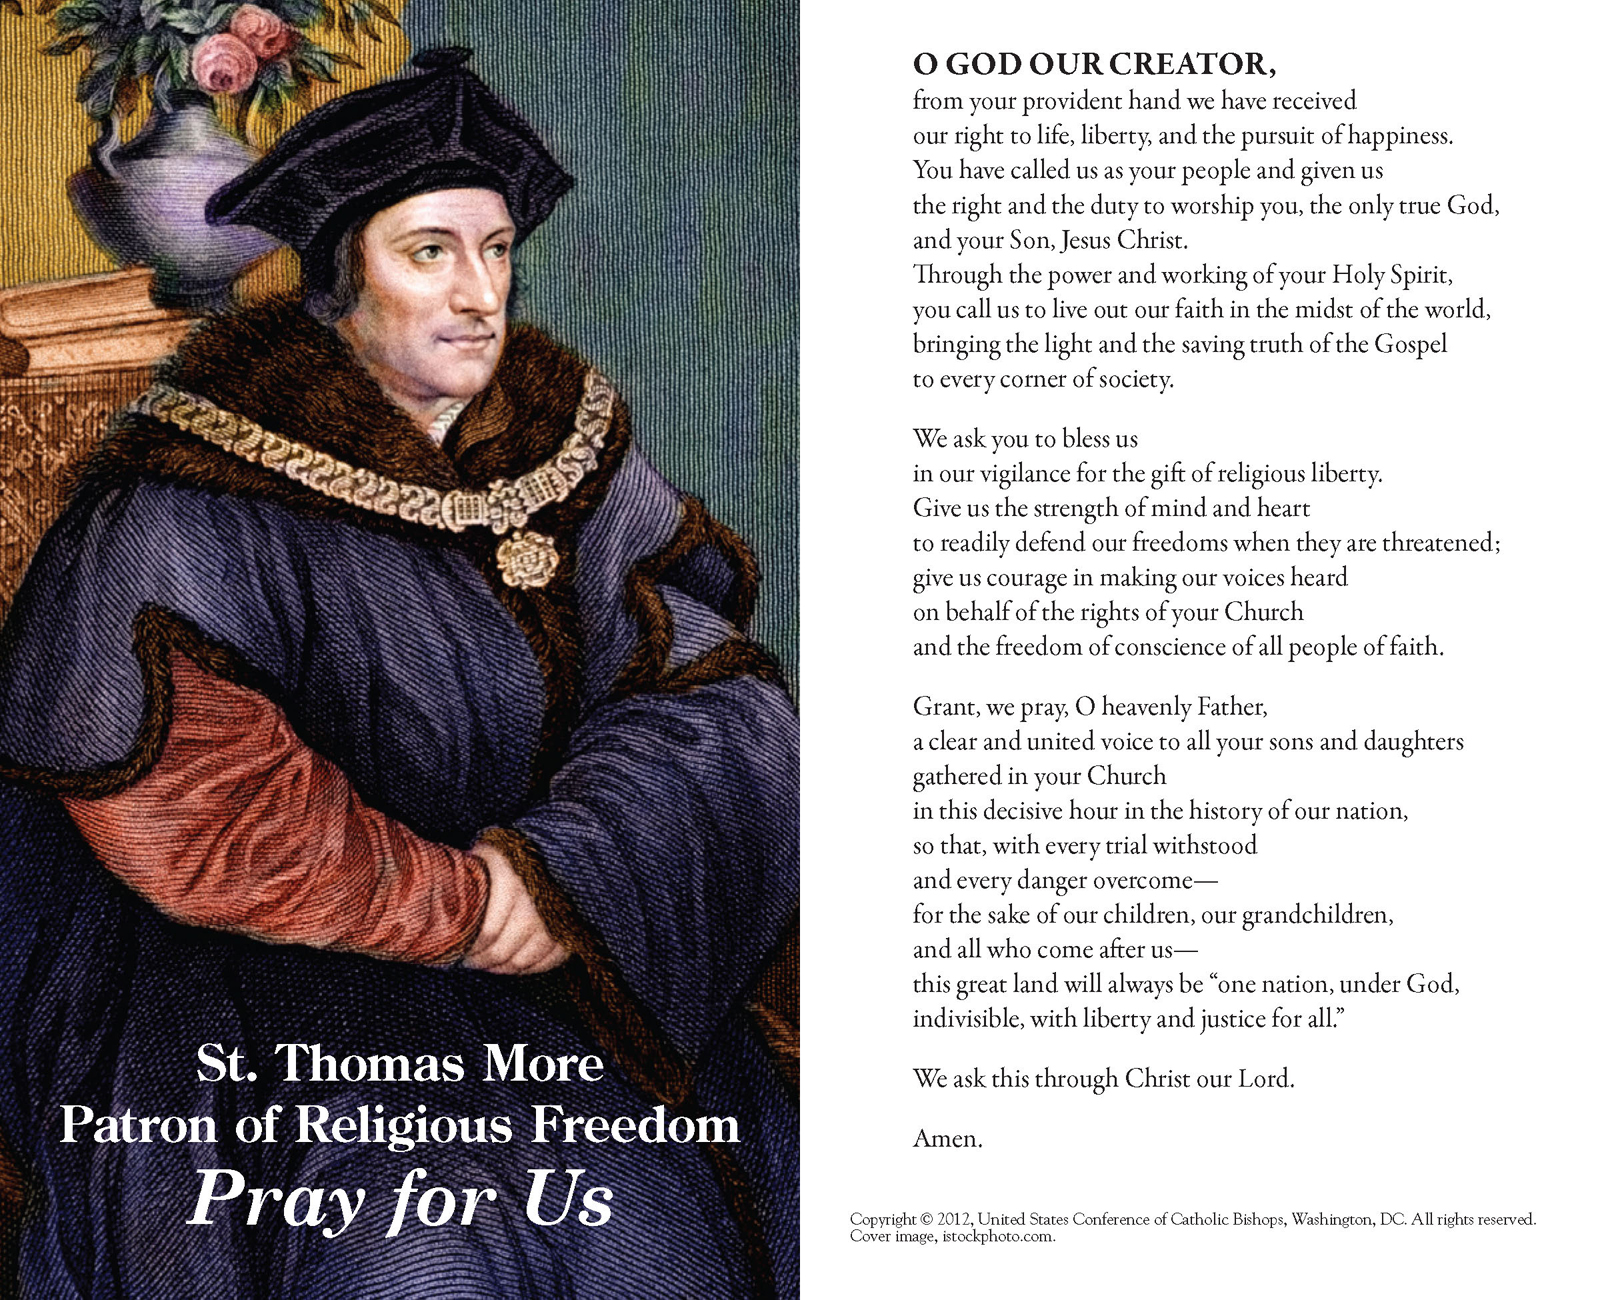 a biography of saint thomas more an english lawyer social philosopher author statesman and renaissan Sir thomas more ( / m r/ 7 february 1478 - 6 july 1535), also known by catholics as saint thomas more, was an english lawyer, social philosopher, author, statesman and noted renaissance humanist.